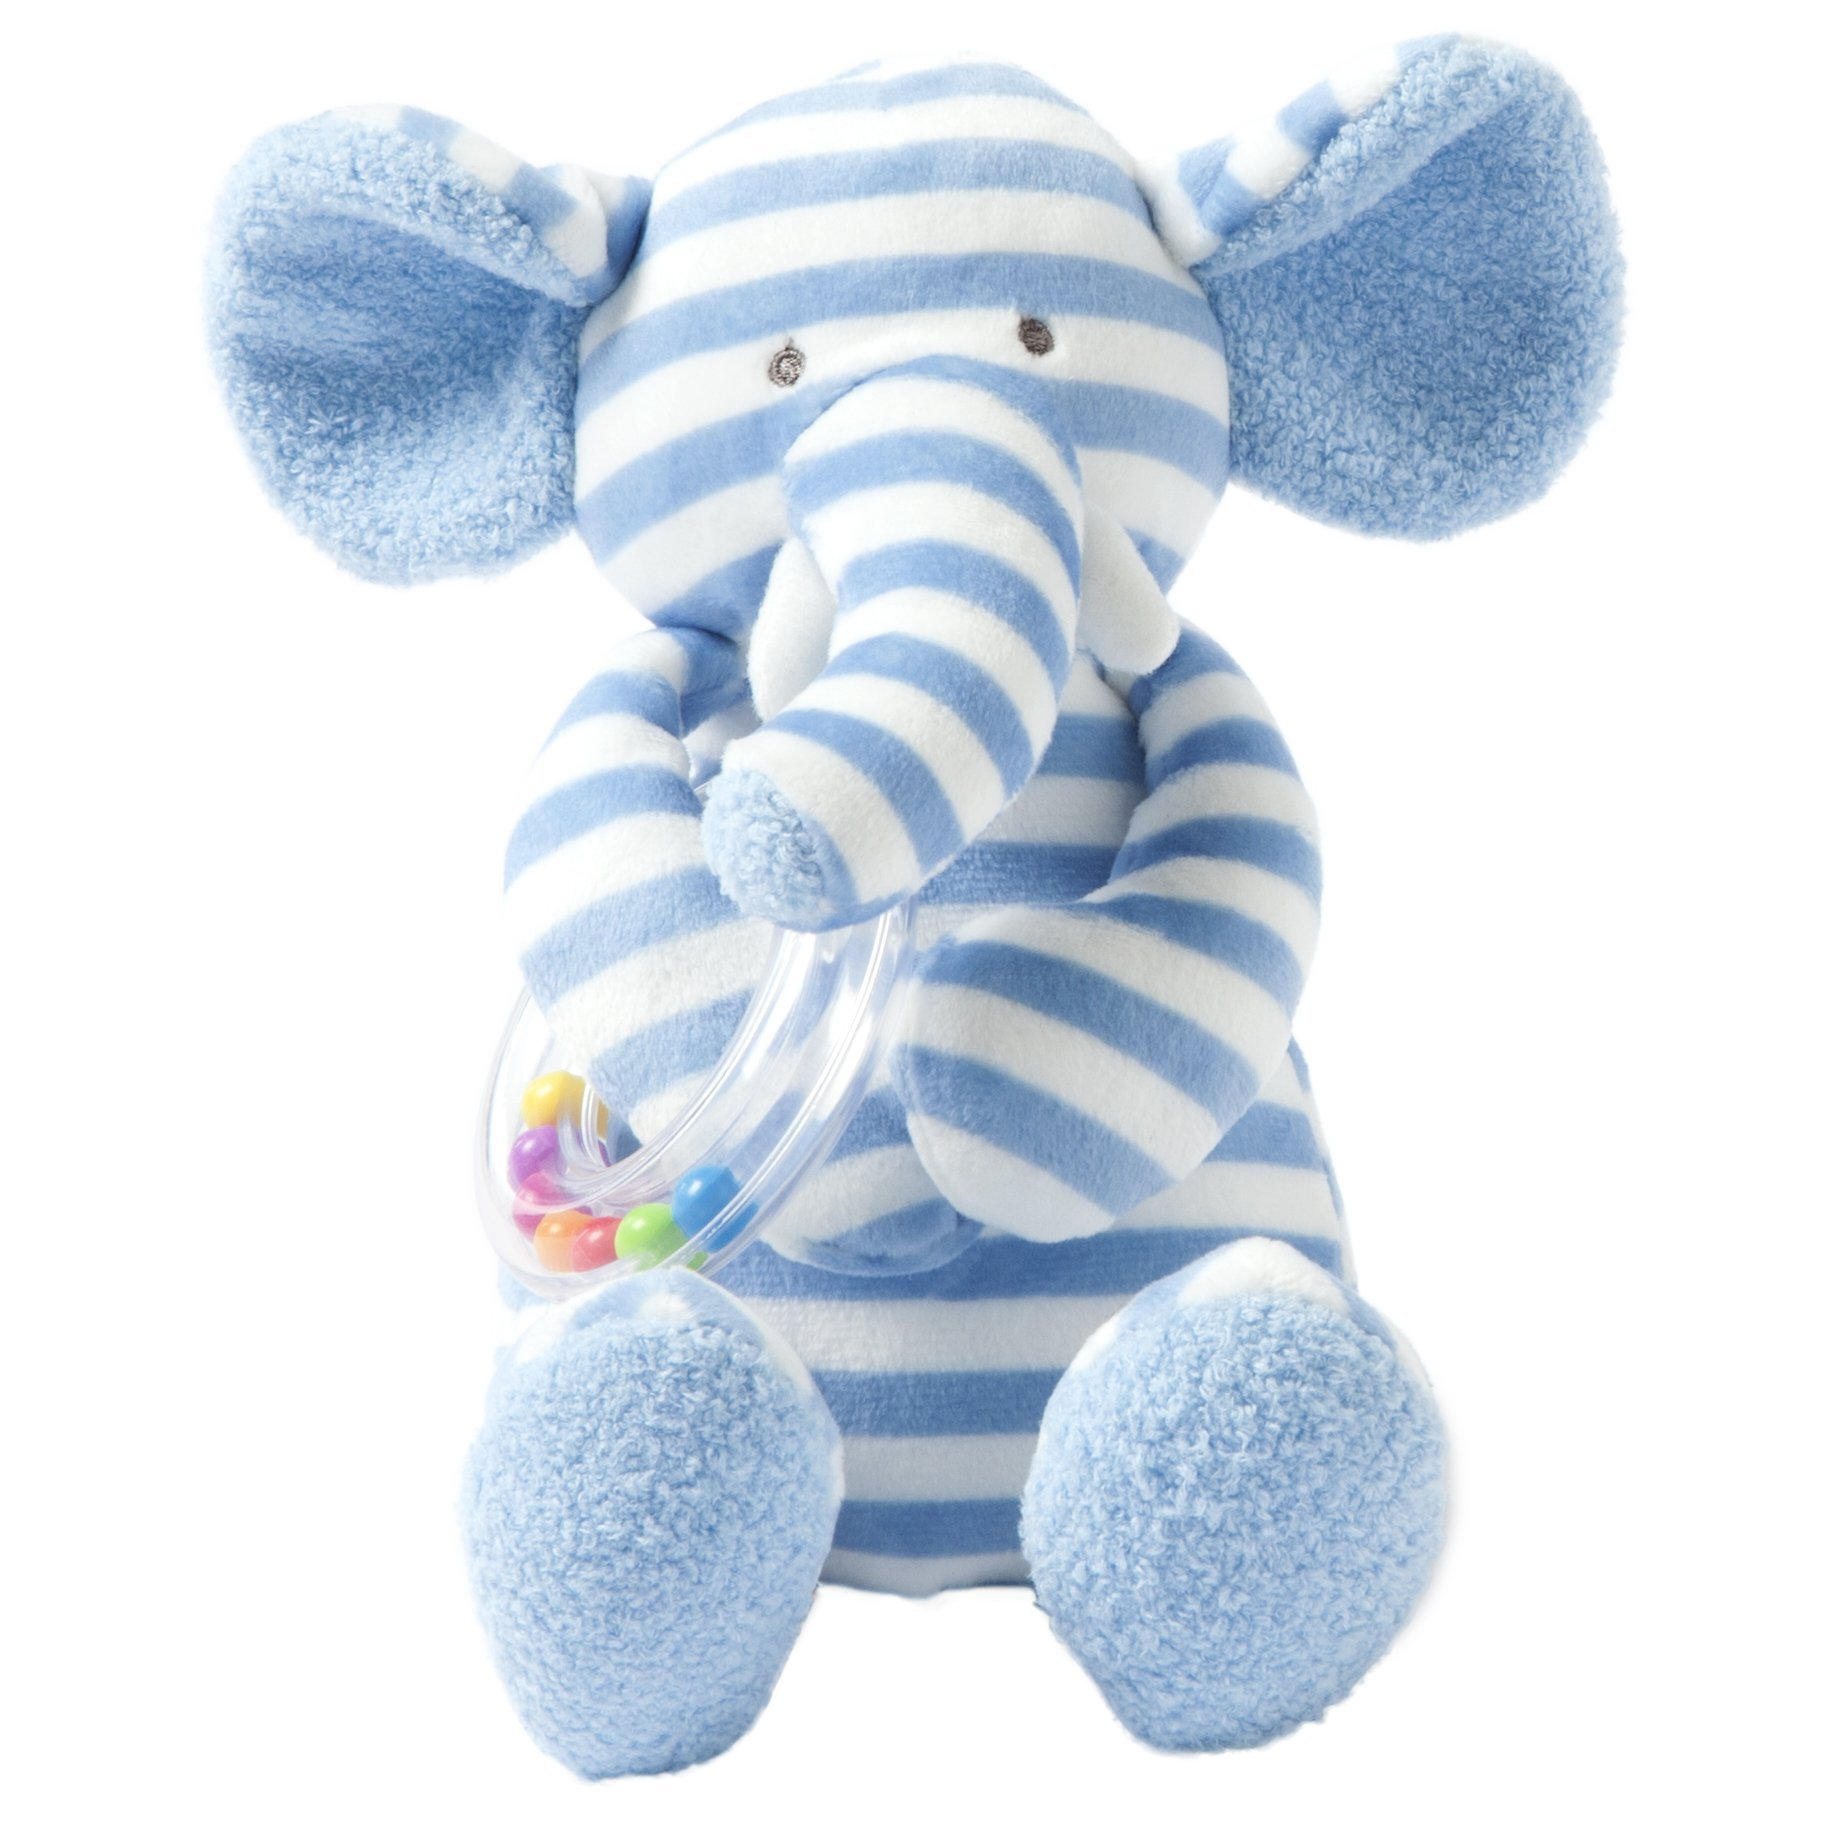 Manhattan Toy Baby Activity Plush Toy with Ring Rattle, Blue Elephant, 10''